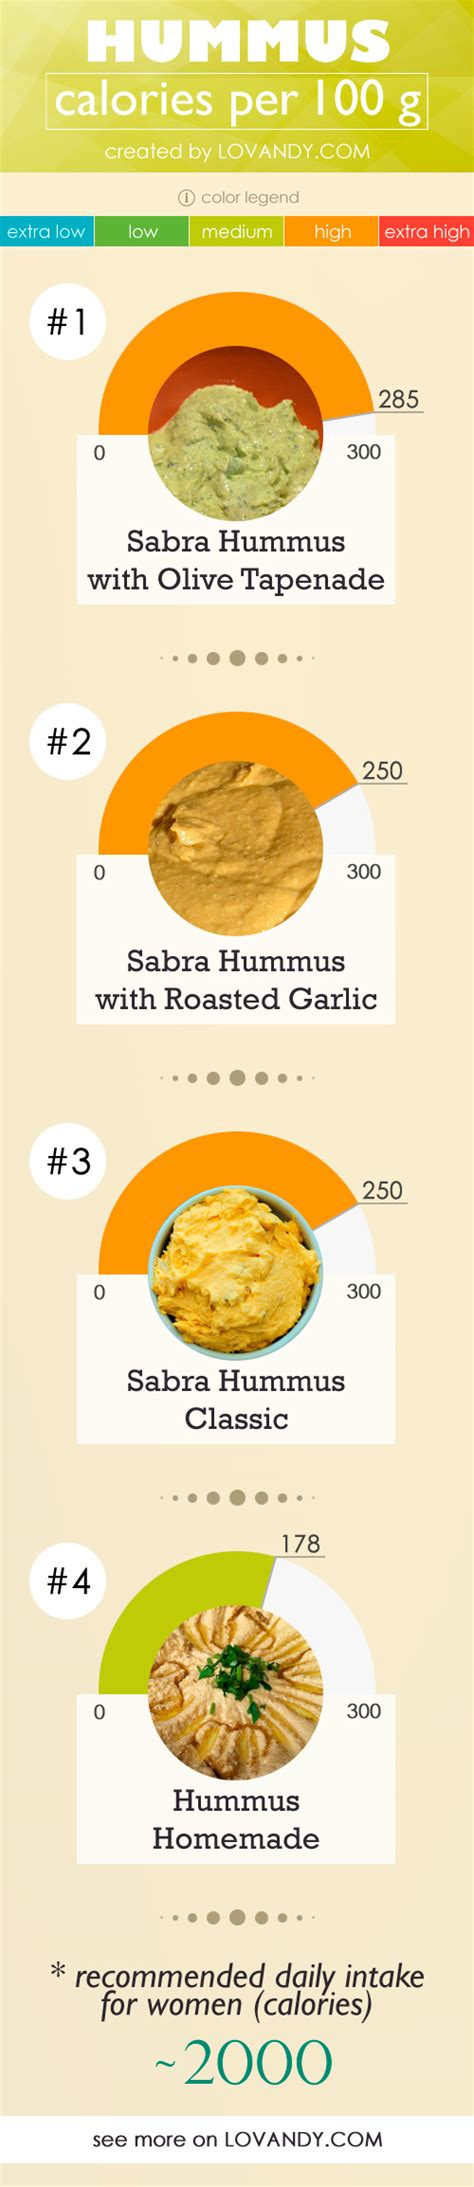 how many calories in hummus how many calories are there in hummus 250 cal